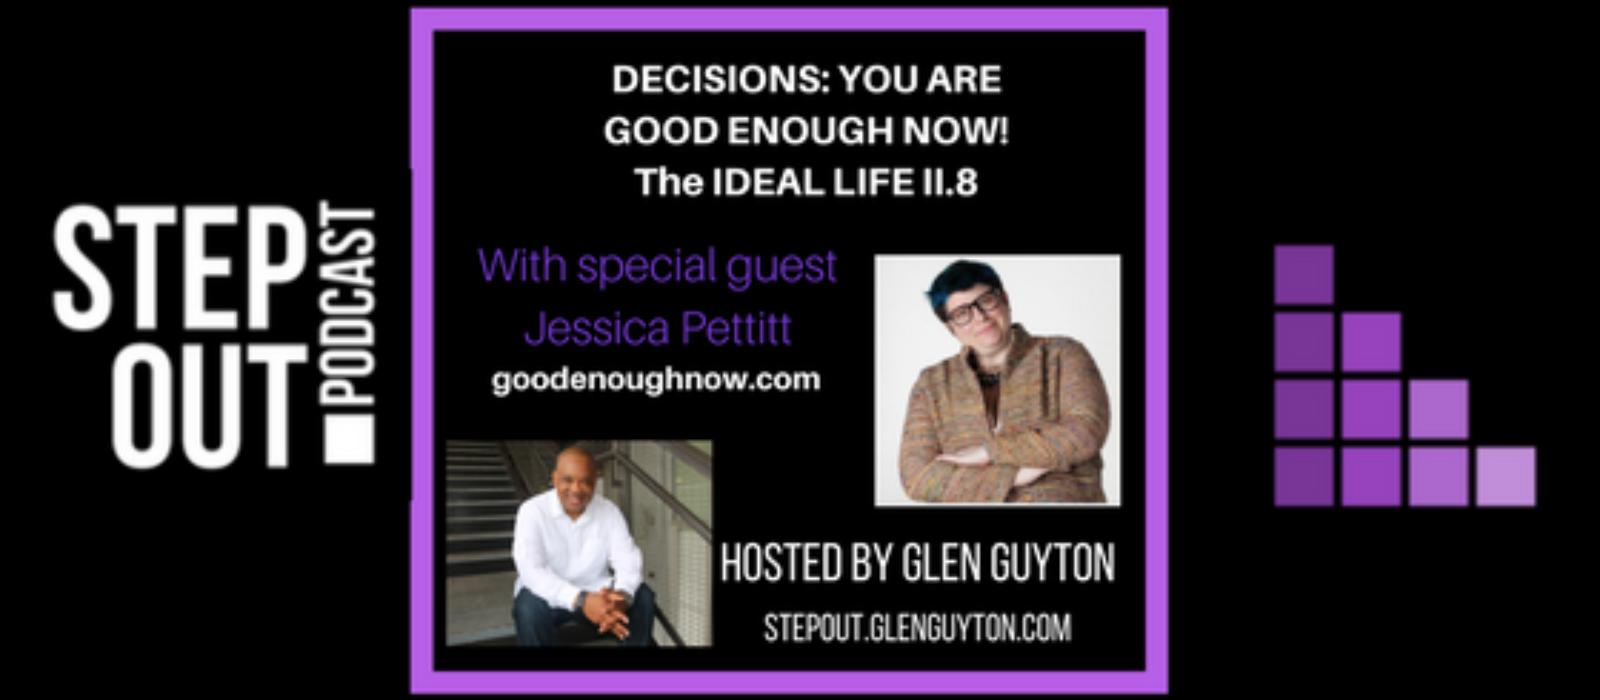 Decisions: YOU ARE GOOD ENOUGH NOW! Living our IDEAL Life II.8